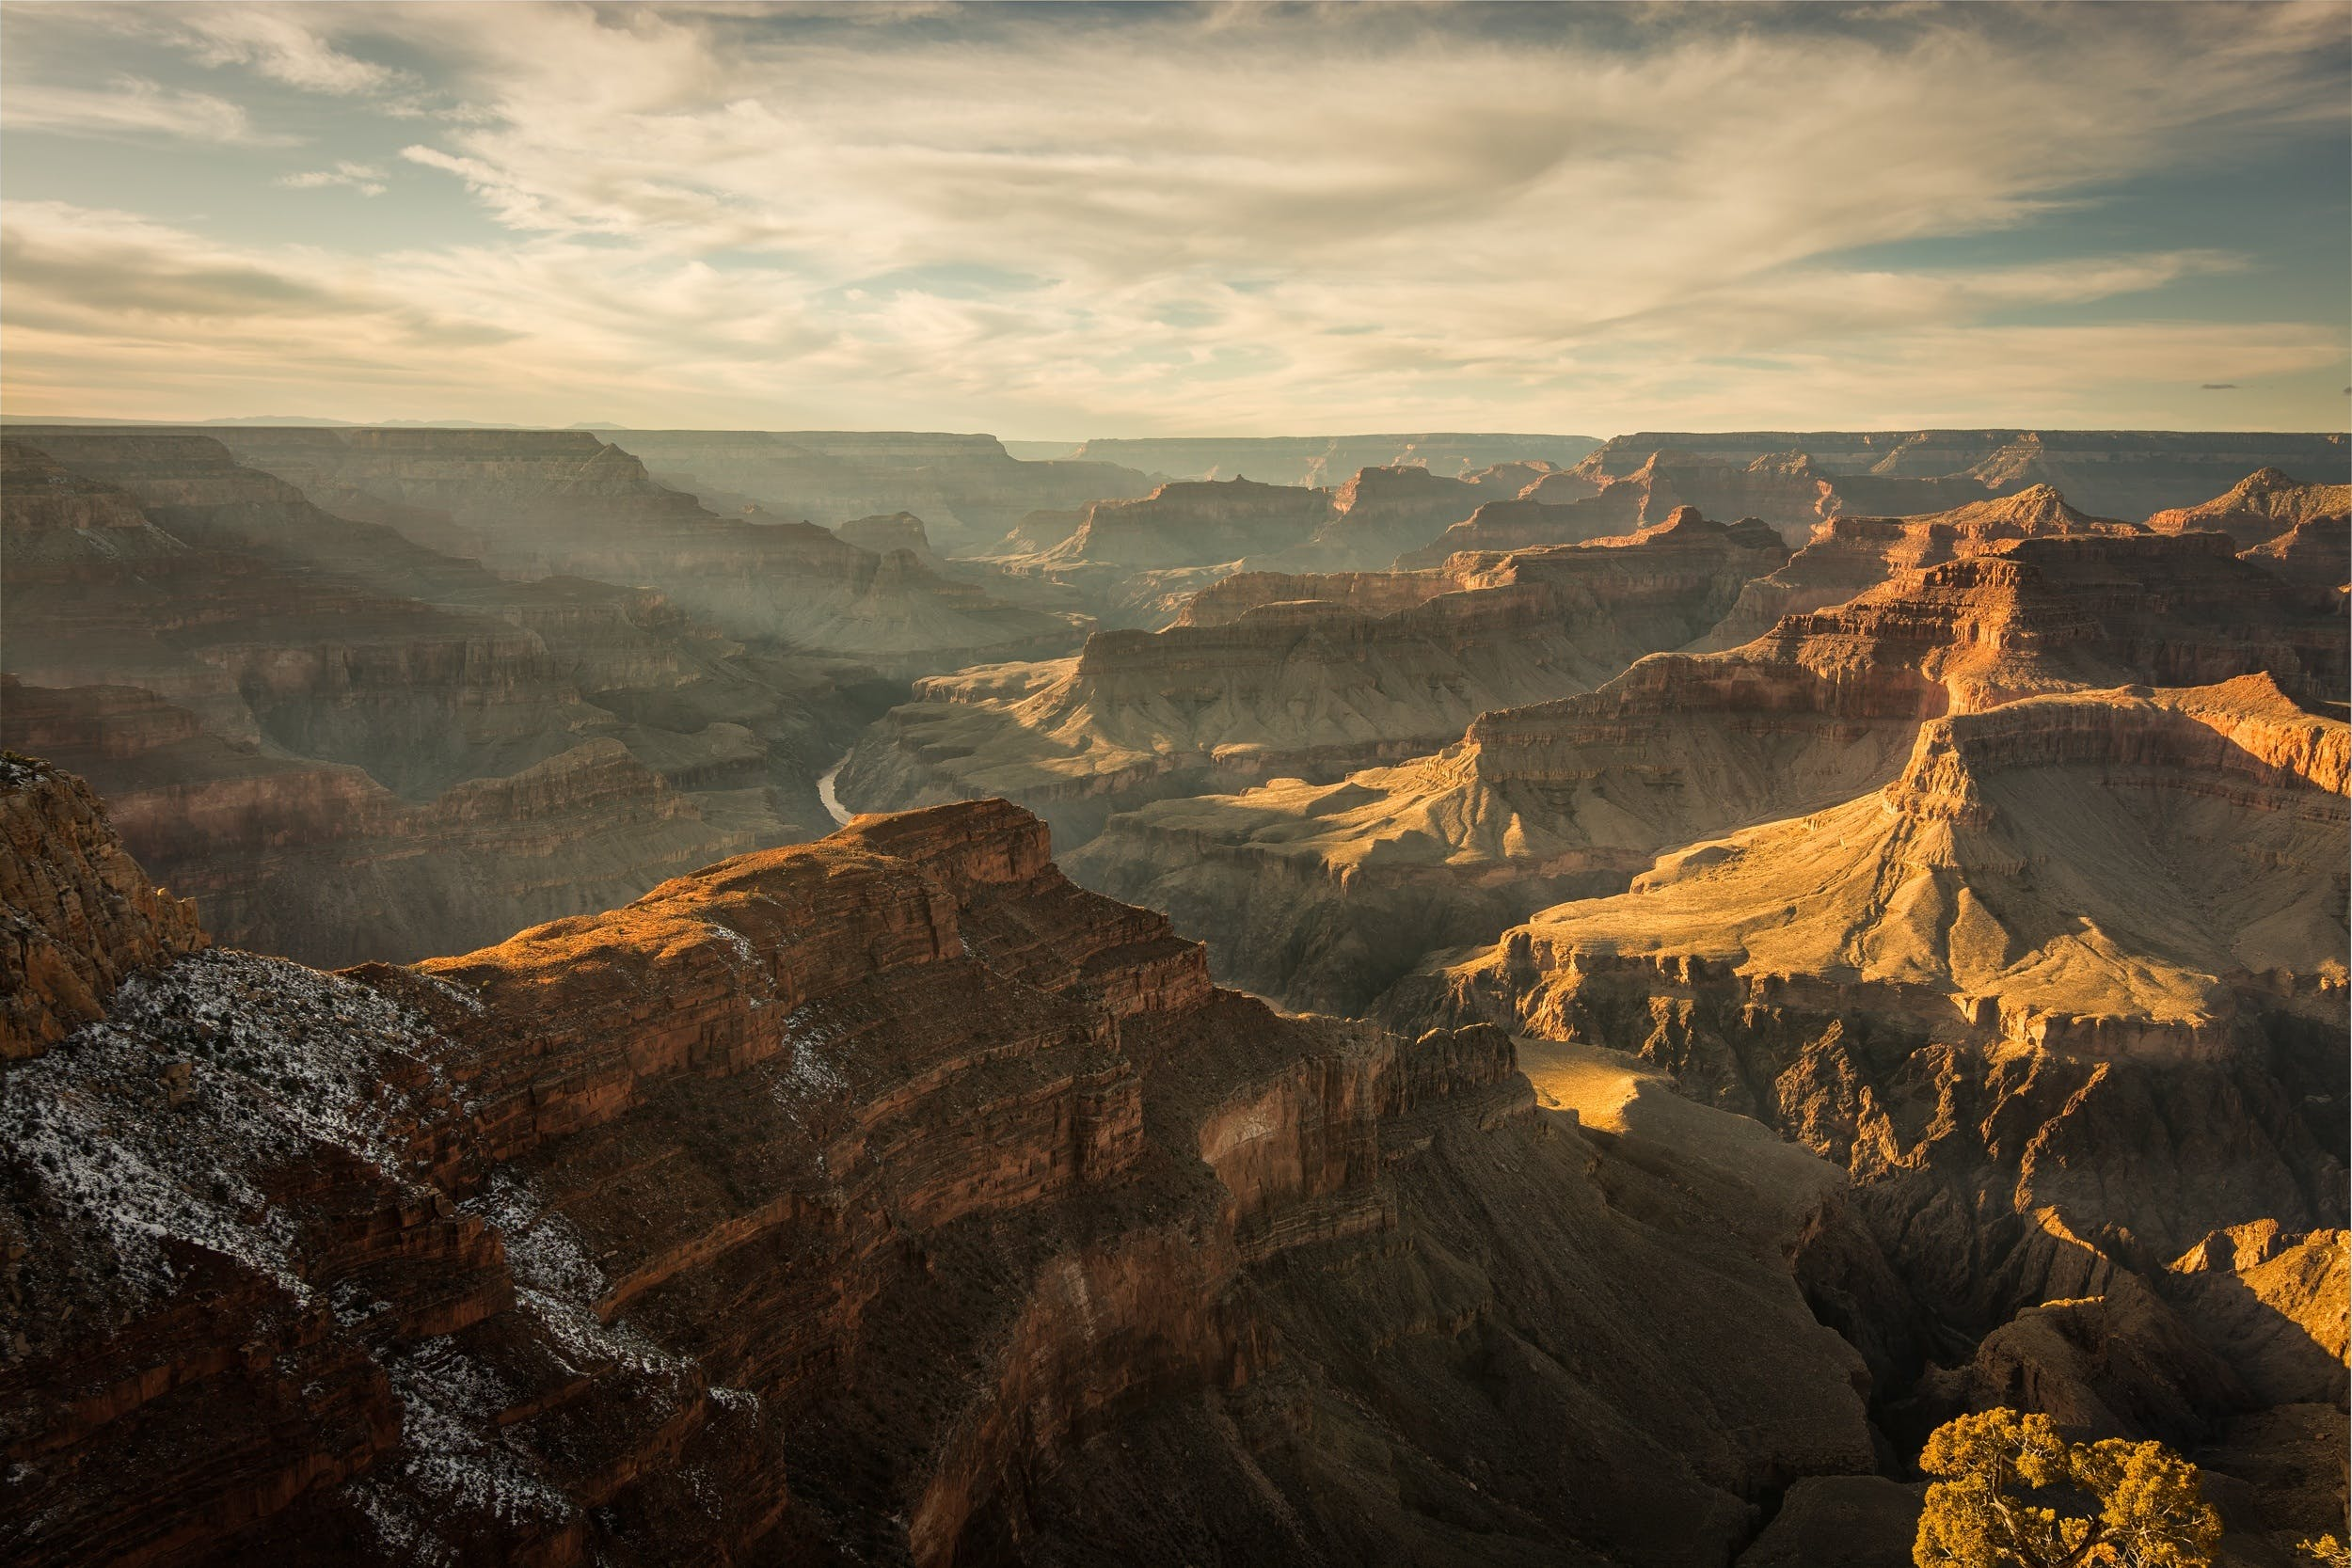 Kostenloses Stock Foto zu arizona, geologie, grand canyon, himmel